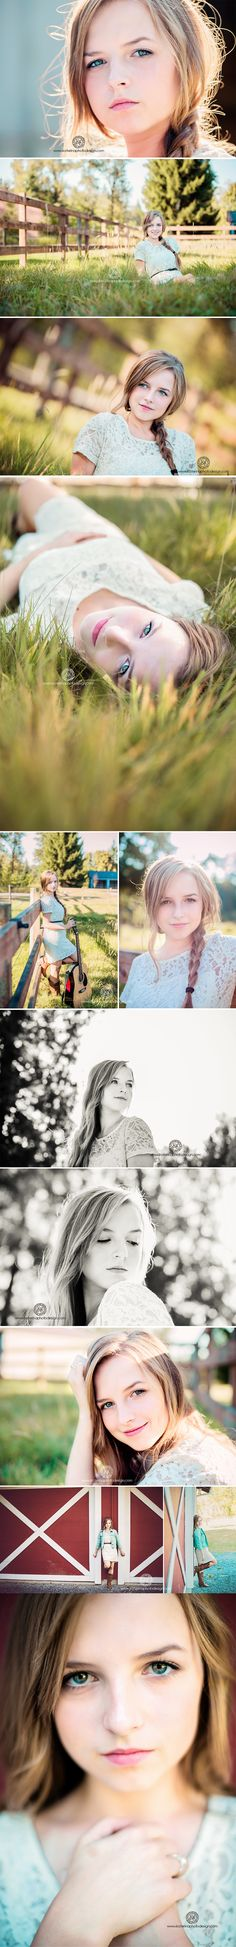 Country inspired Senior Photography